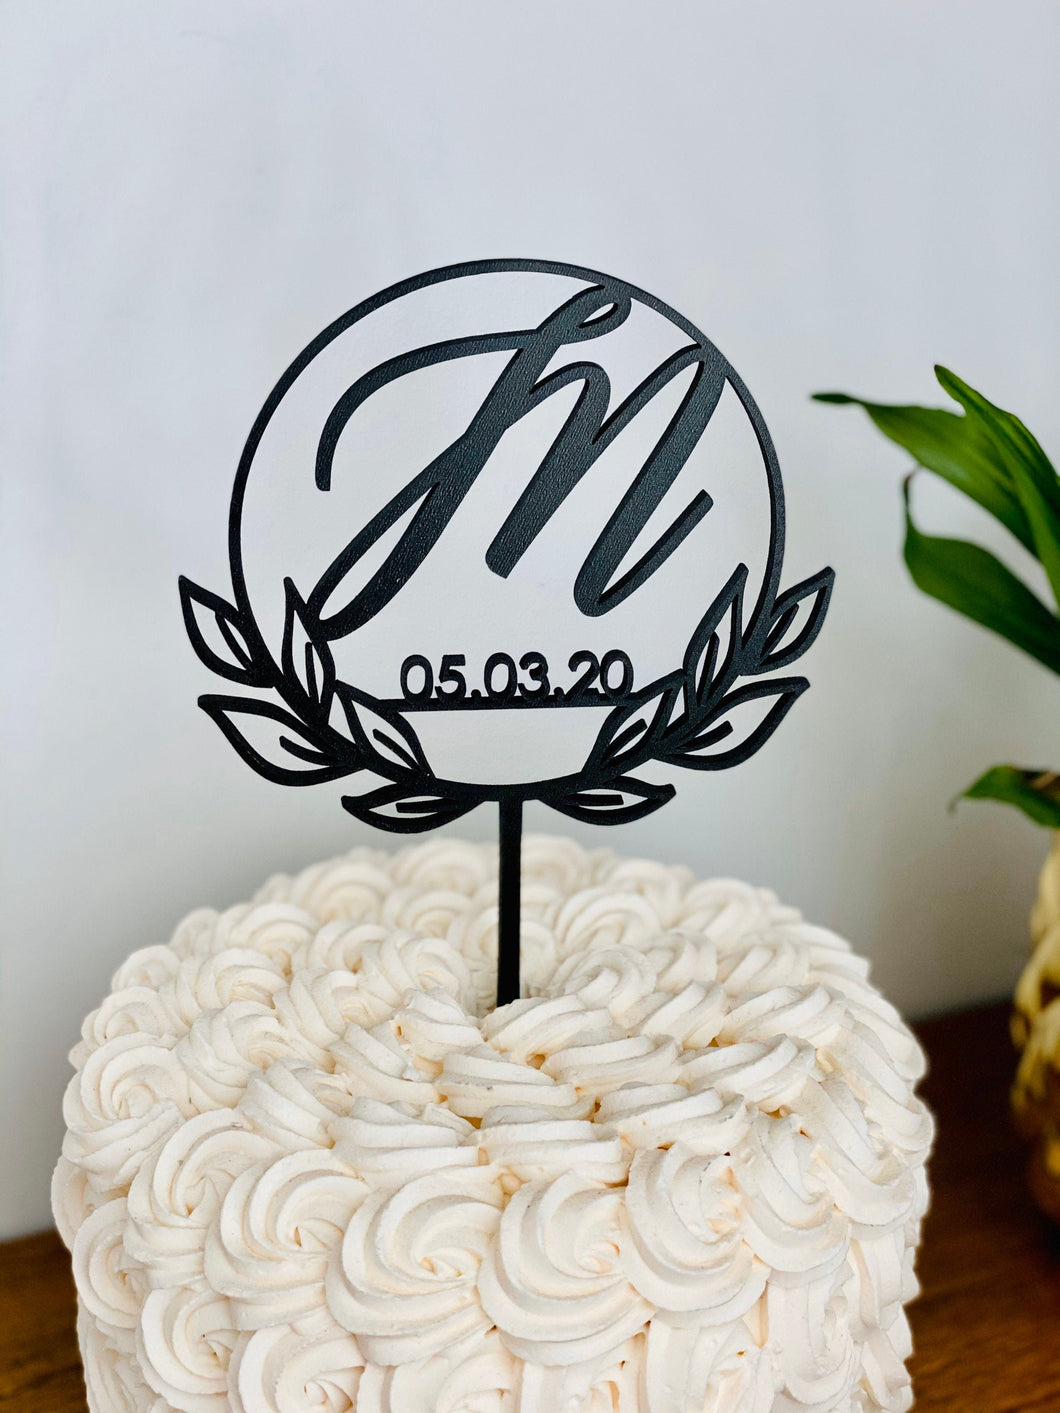 Personalized Initial Date Circle Half Wreath Cake Topper, 5